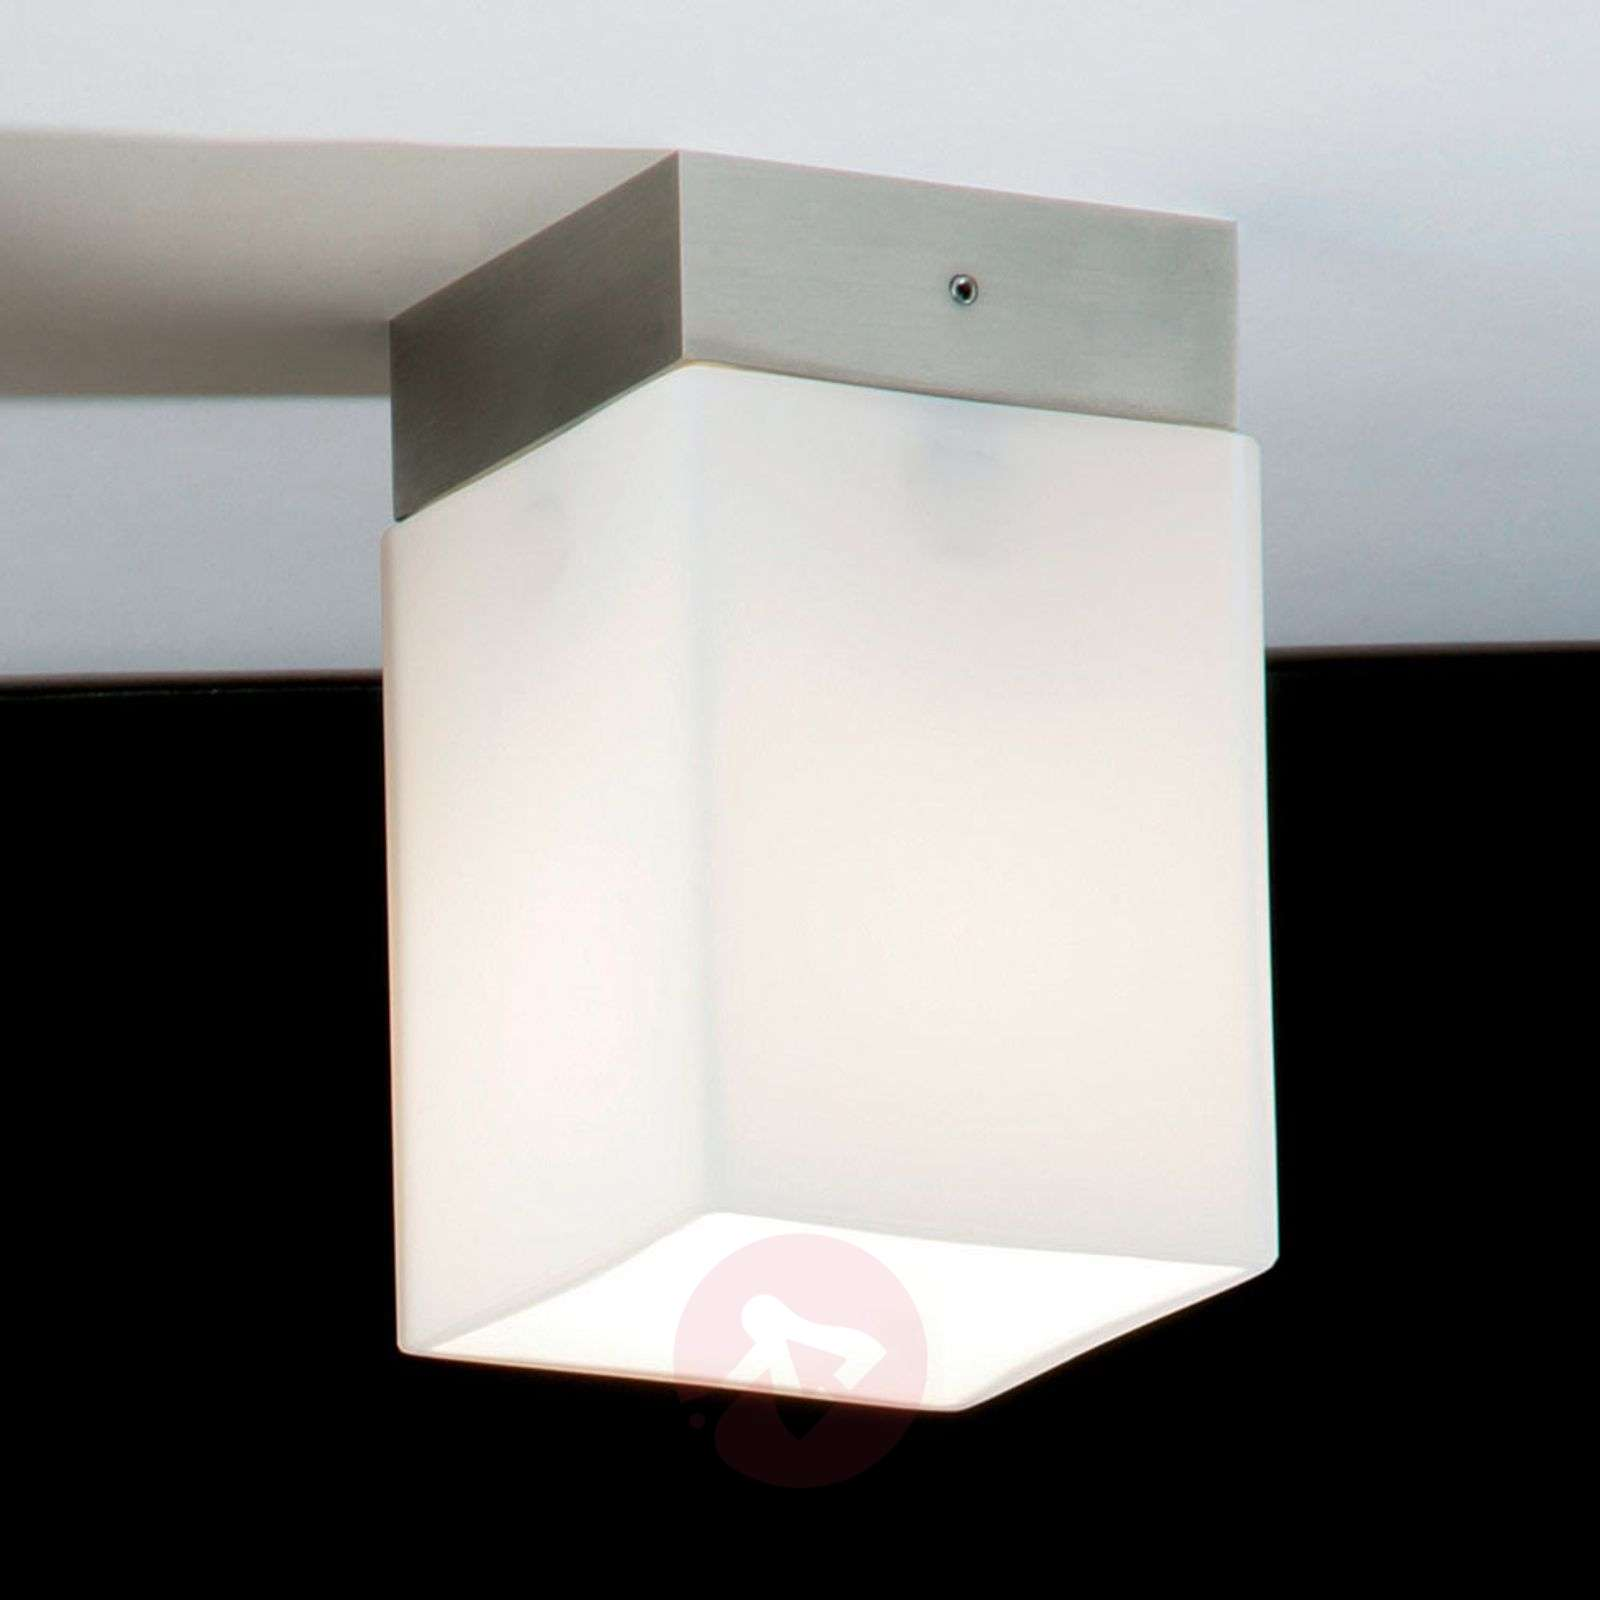 Plafoniere Per Box : Acquista plafoniera corta quadro box short lampade